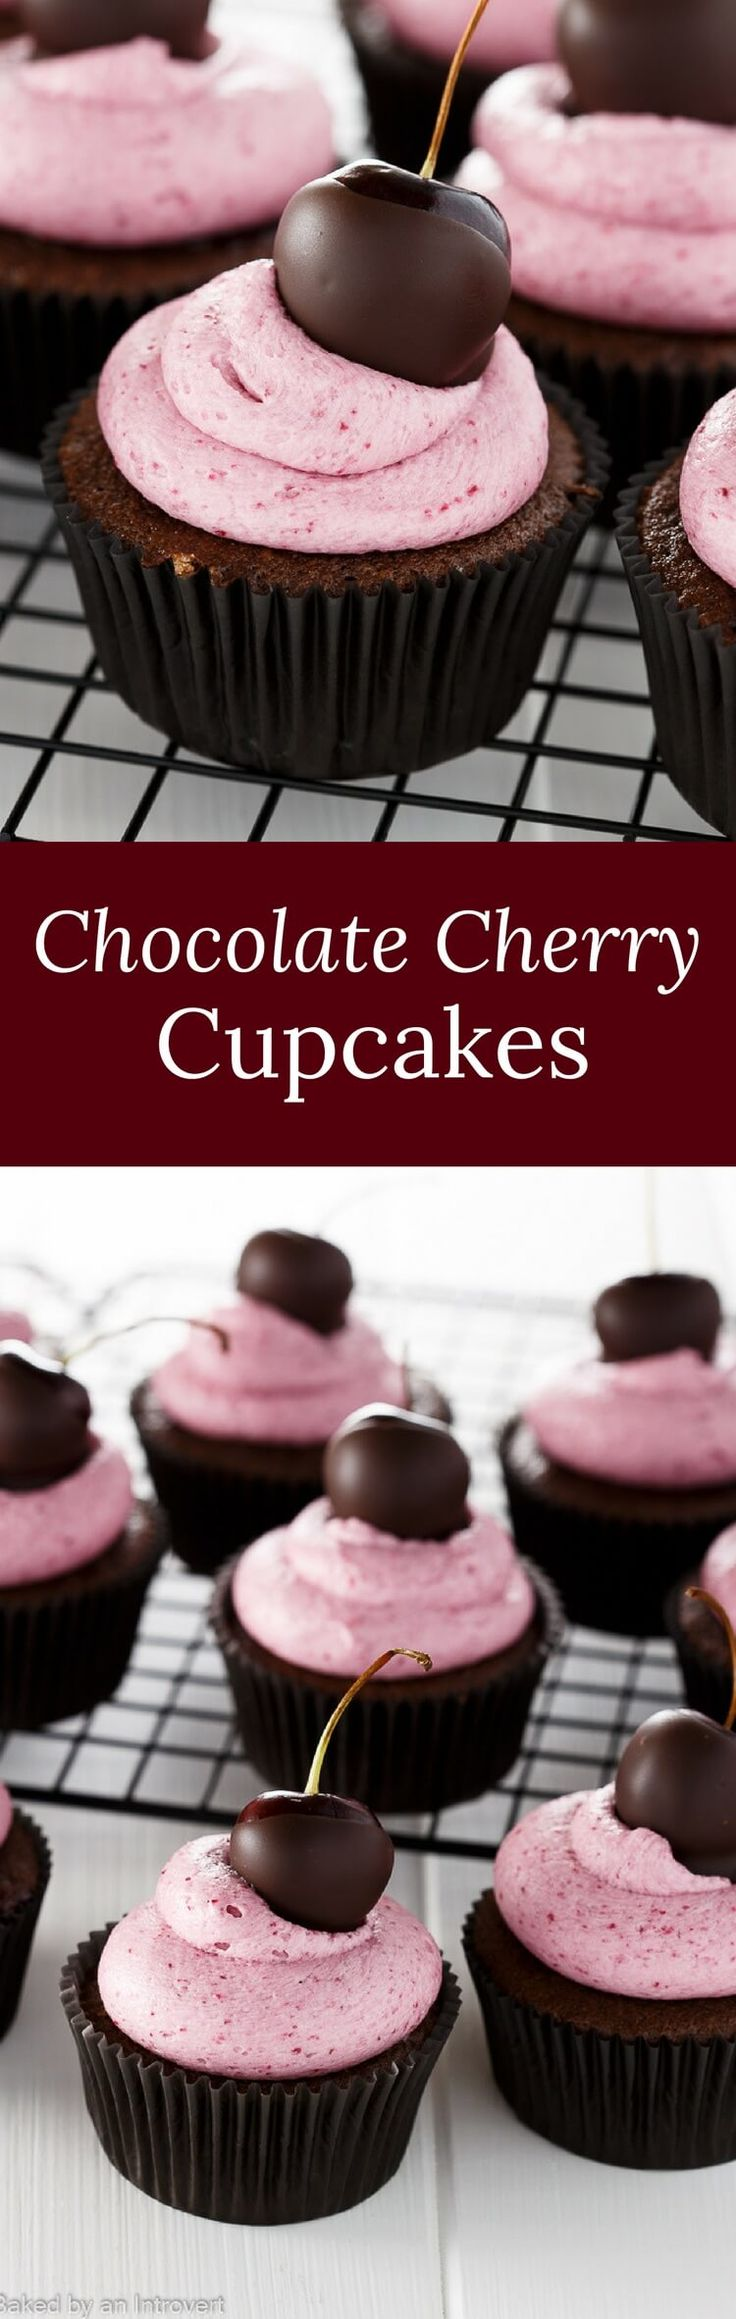 Chocolate Cherry Cupcakes - Chocolate cupcakes filled with cherry preserves and topped with cherry buttercream frosting. via @introvertbaker